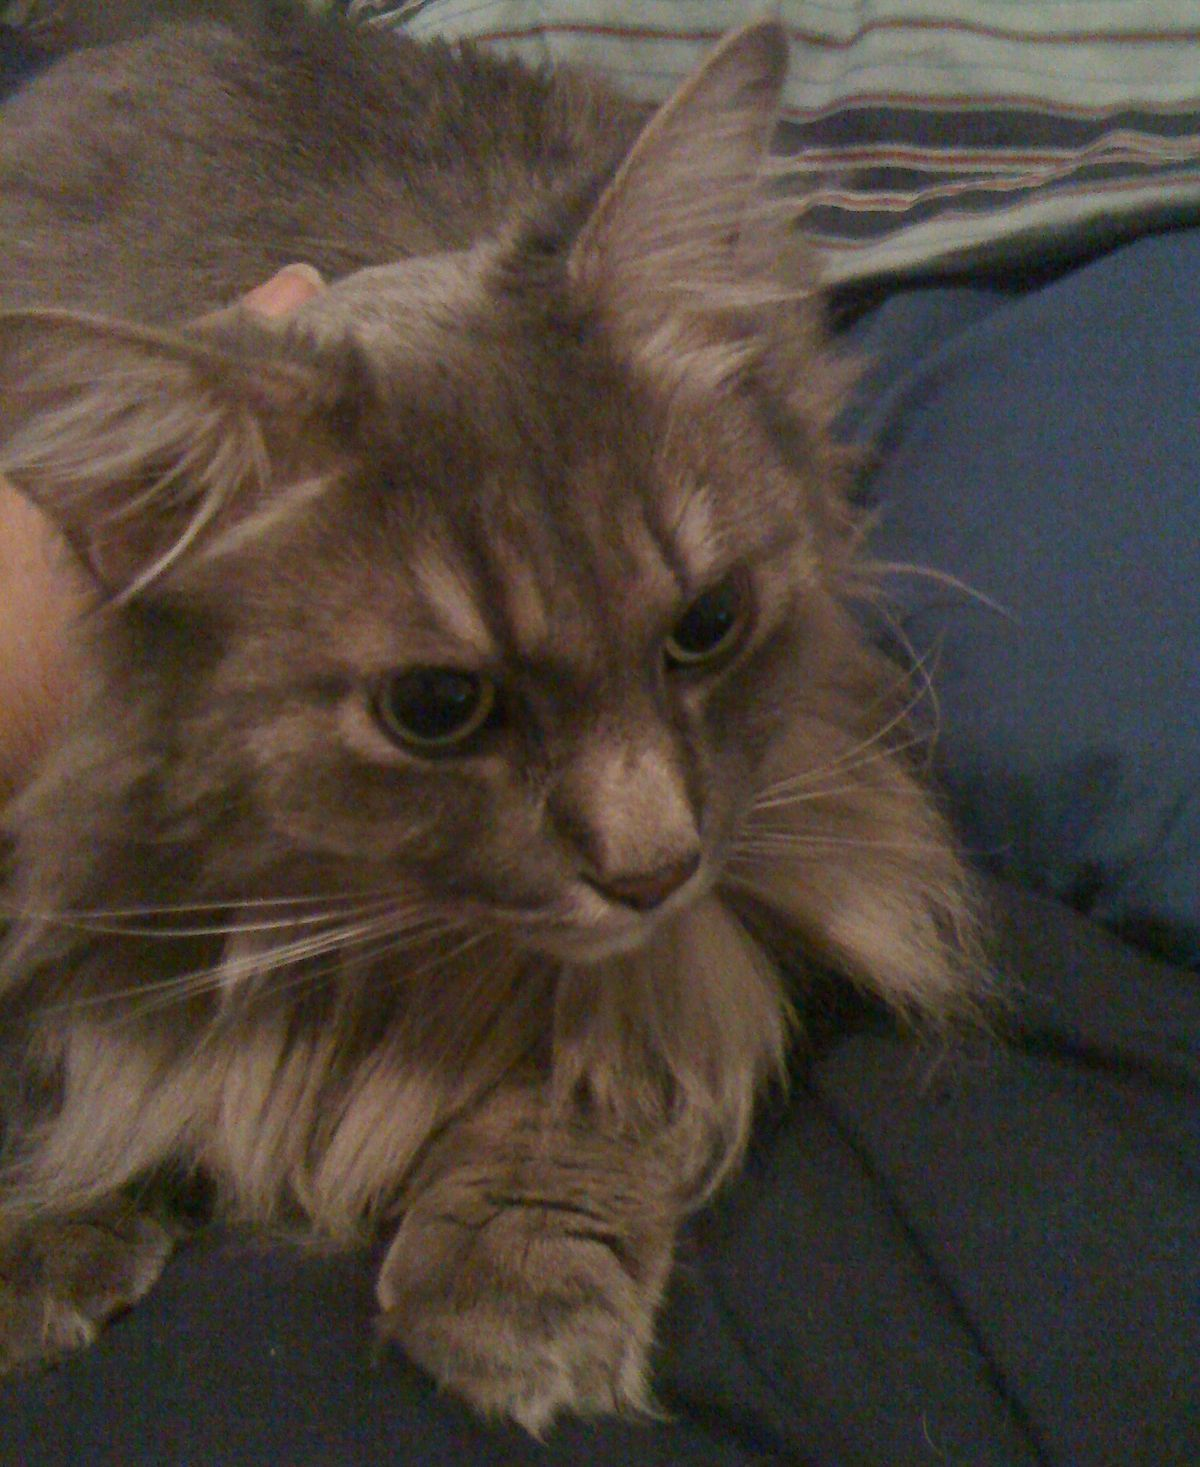 Pietro Appearance: A Pietro is a grey semi-longhair and incredibly handsome. He has big green-yellow eyes, long whiskers, huge paws, and a highly dignified mien. He is also extremely, extremely fluffy.  Like seriously. So fluffy. Sociability: B Pietro is perhaps TOO sociable. He enjoys attention and becomes quite annoyed if he feels that you aren't paying the proper amount to him. The proper amount being: all the attention. He is initially a little shy around strangers, but after he's observed them for a few minutes and determined that they are not attempting to steal his food, his bed (my bed), or his me (…me), he is very welcoming. He likes to be petted, sit on people and/or their belongings, to follow persons of interest from room to room, and to watch as people carry out various tasks. Provided those tasks do not involve too much concentrated attention on things that are not him. He also comes when called (if he feels like it) and is very free with his kitty kisses. Usefulness: F He's a cat… I'm pretty sure he is contractually obligated to be of no use at all ever. Though, I will say that every once in a while, he sleeps on my feet and keeps them warm. Huggability: A Because he is so excessively fluffy, Pietro is extremely huggable. He also enjoys hugs very much and will sometimes demand them as soon as you sit still for long enough for him to jump into your lap and headbutt your face or wiggle himself into the cradle of your arms. (The latter works best, he has found, when you are already holding something else.) Overall Grade: C+